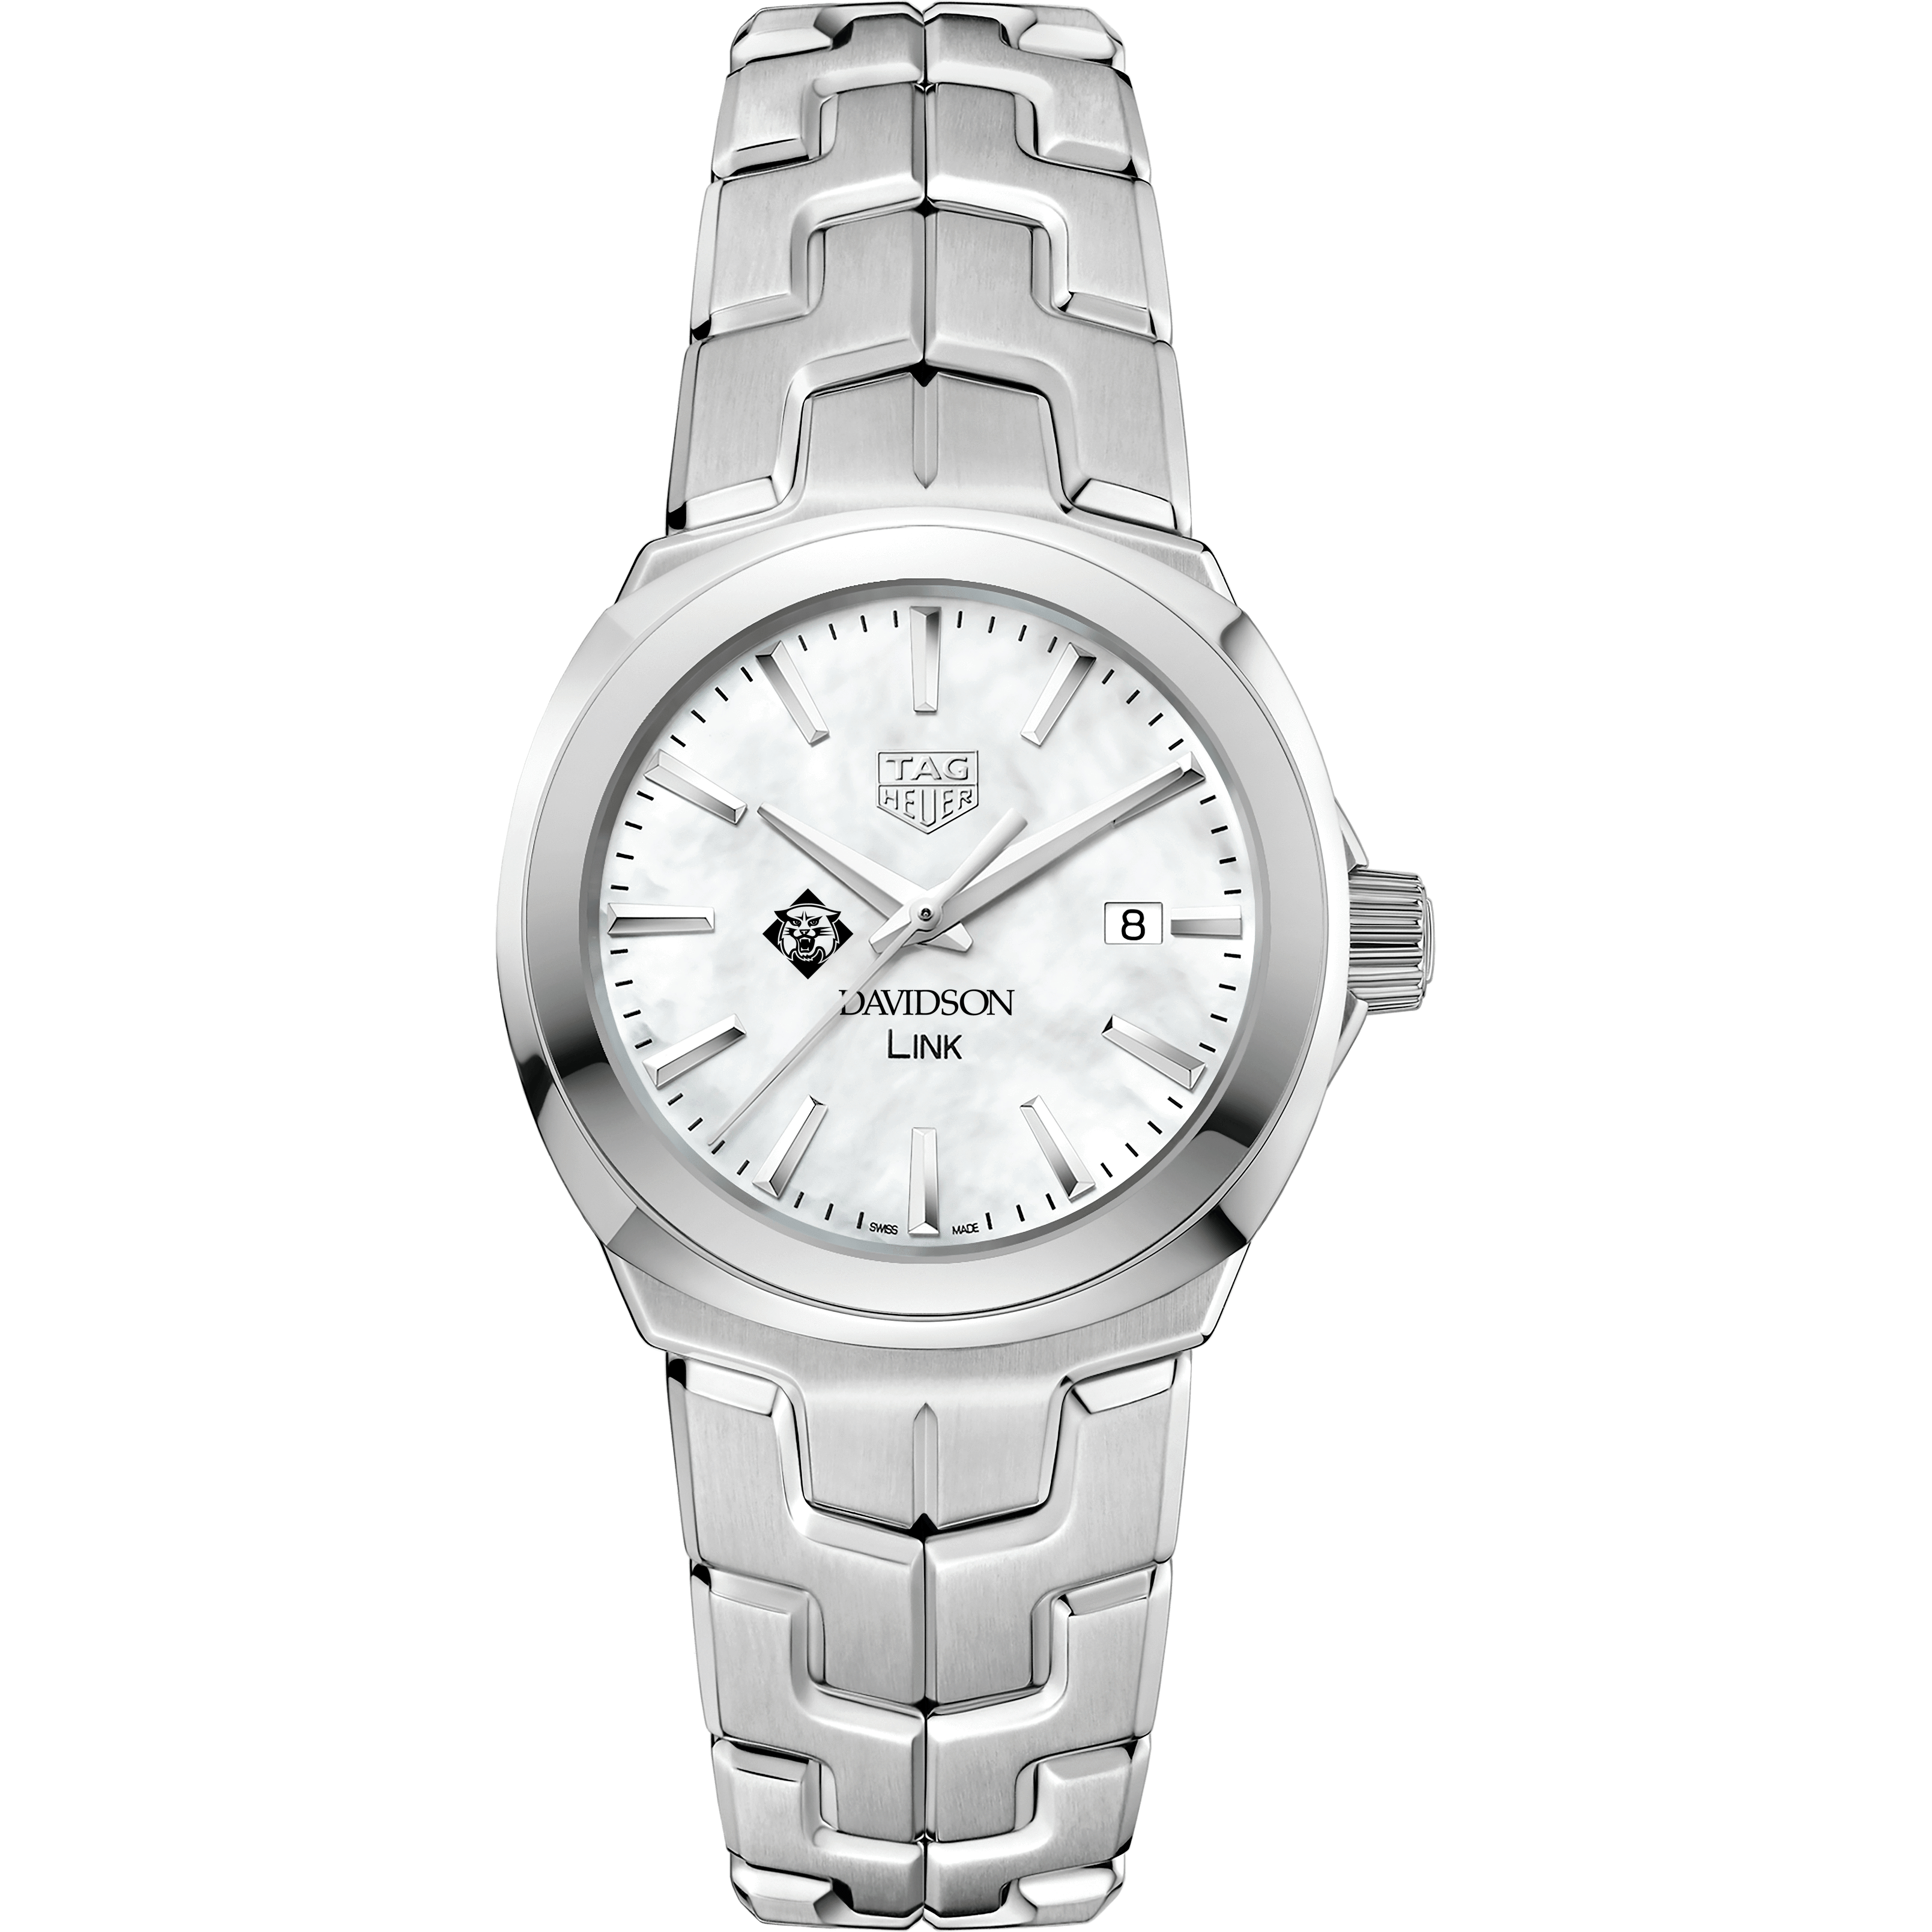 Davidson College TAG Heuer LINK for Women - Image 2